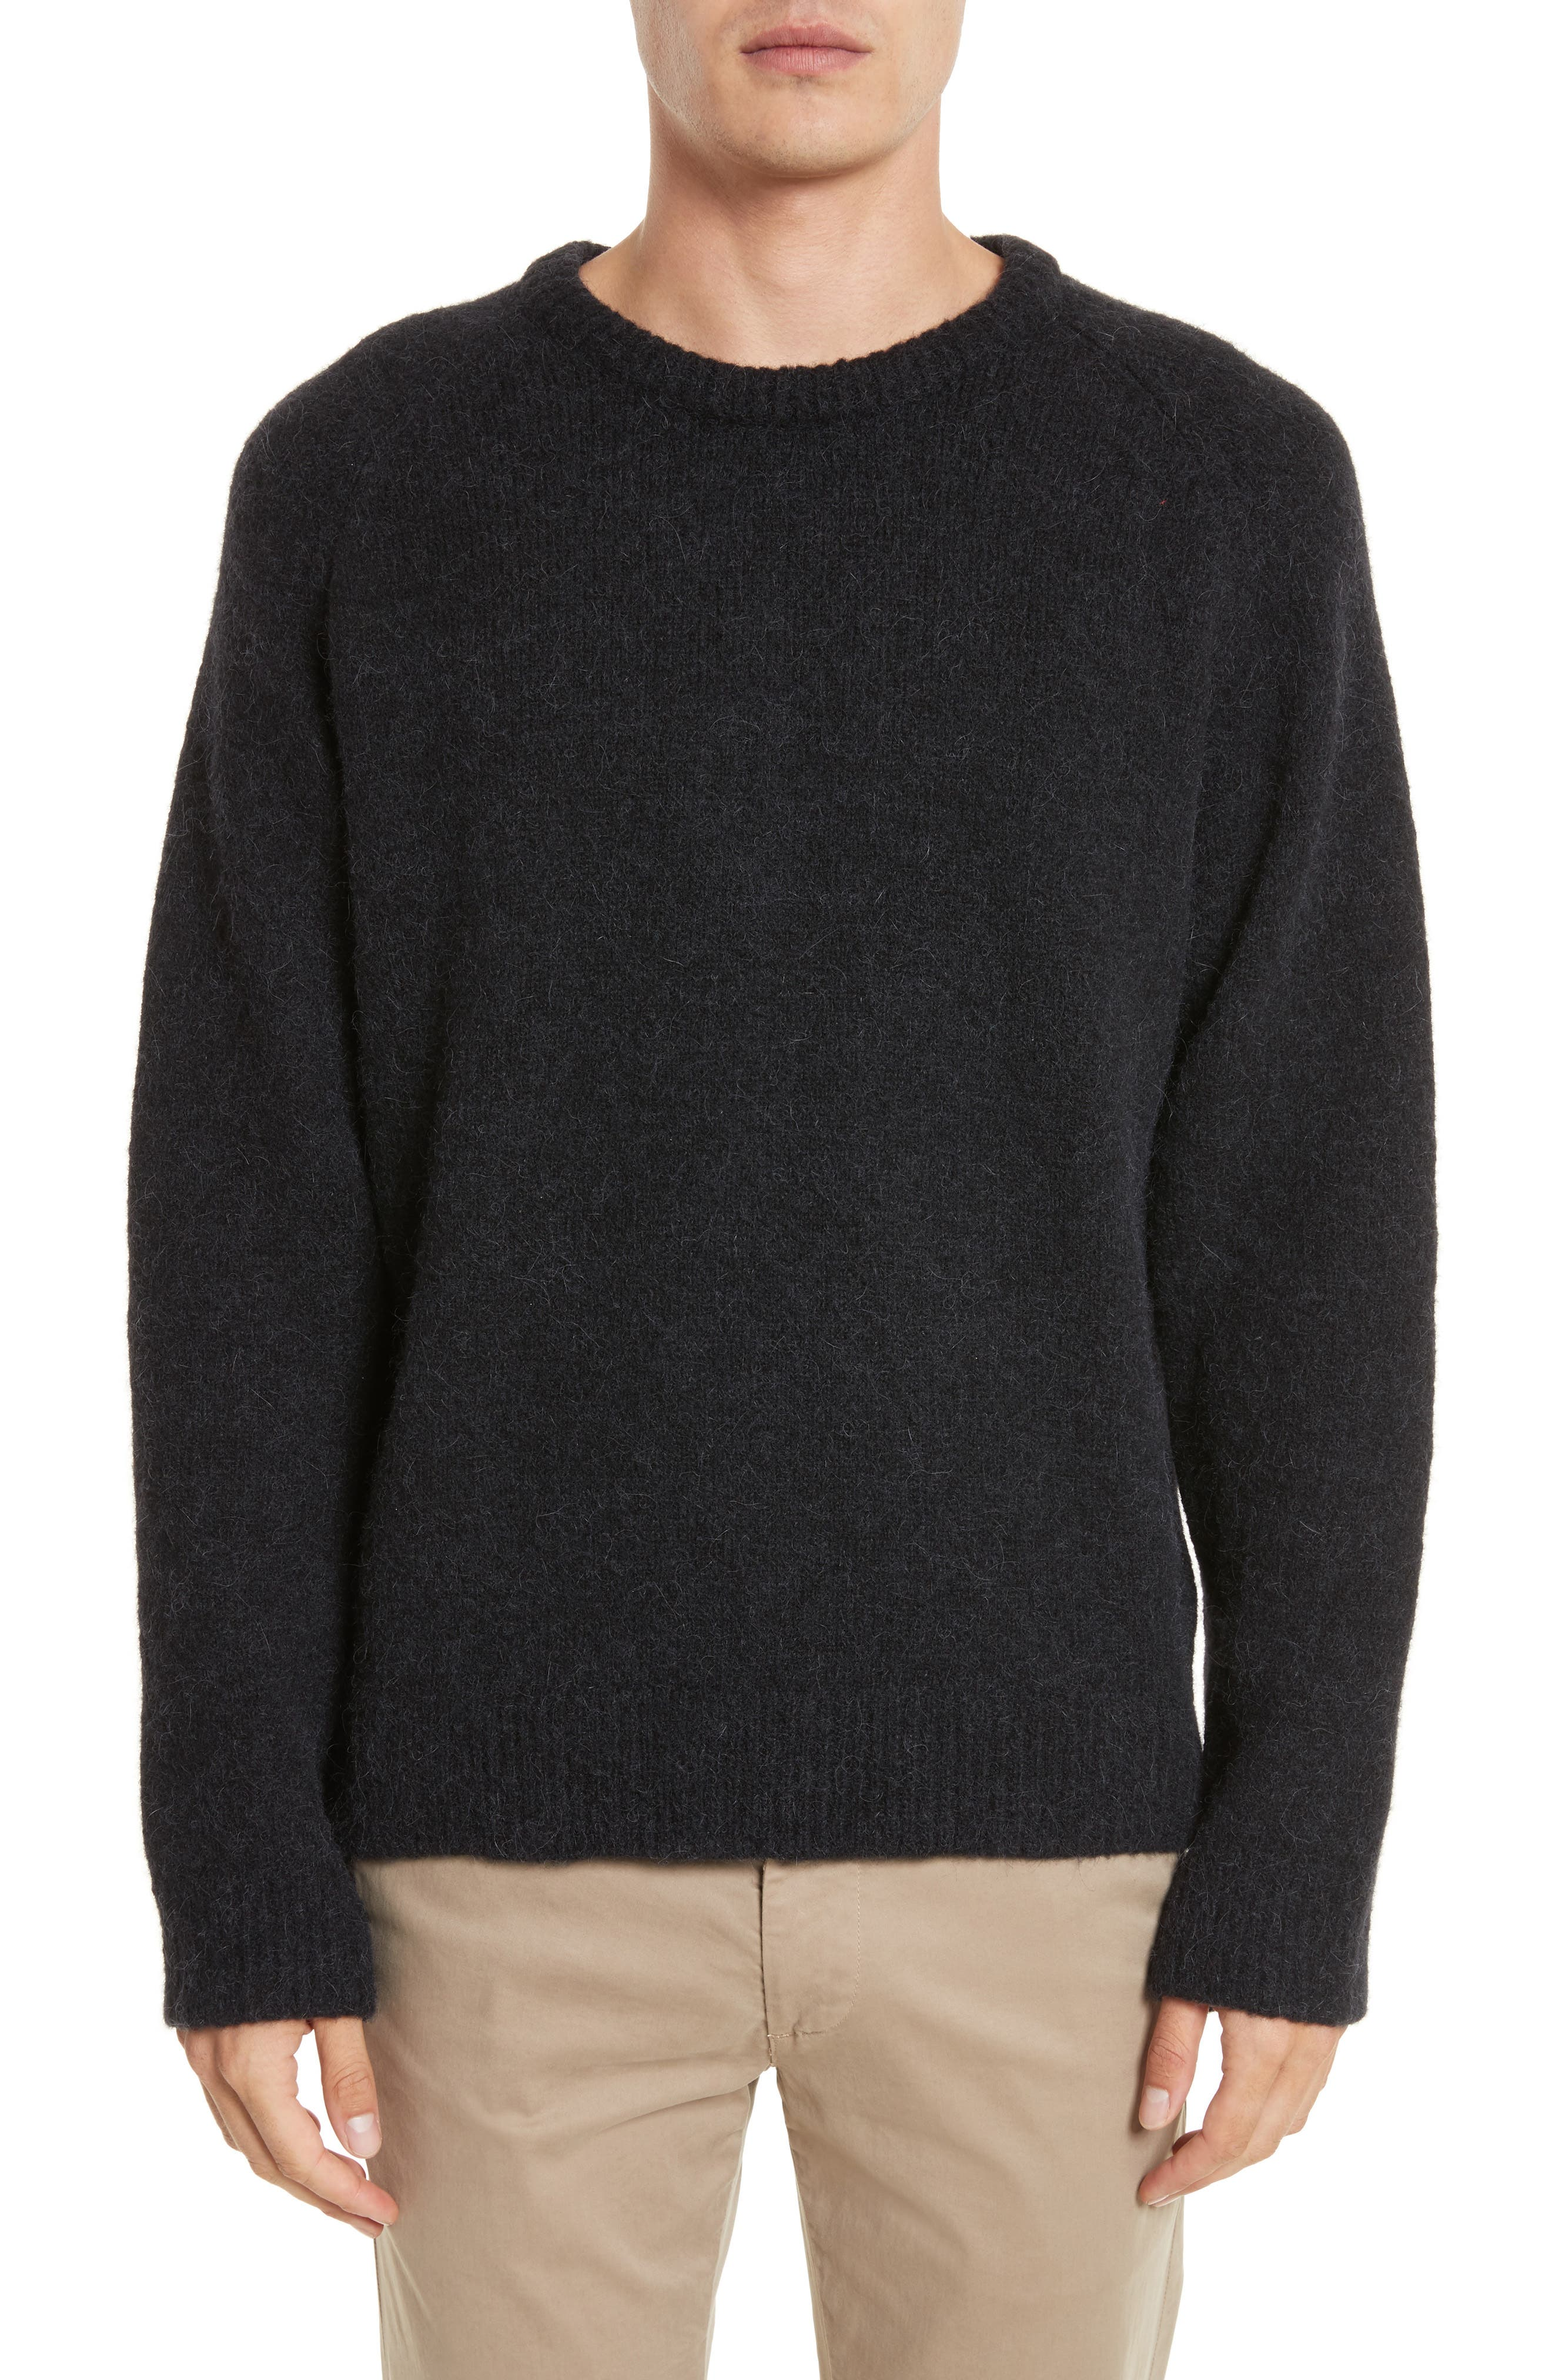 Main Image - OUR LEGACY Wool Blend Crewneck Sweater